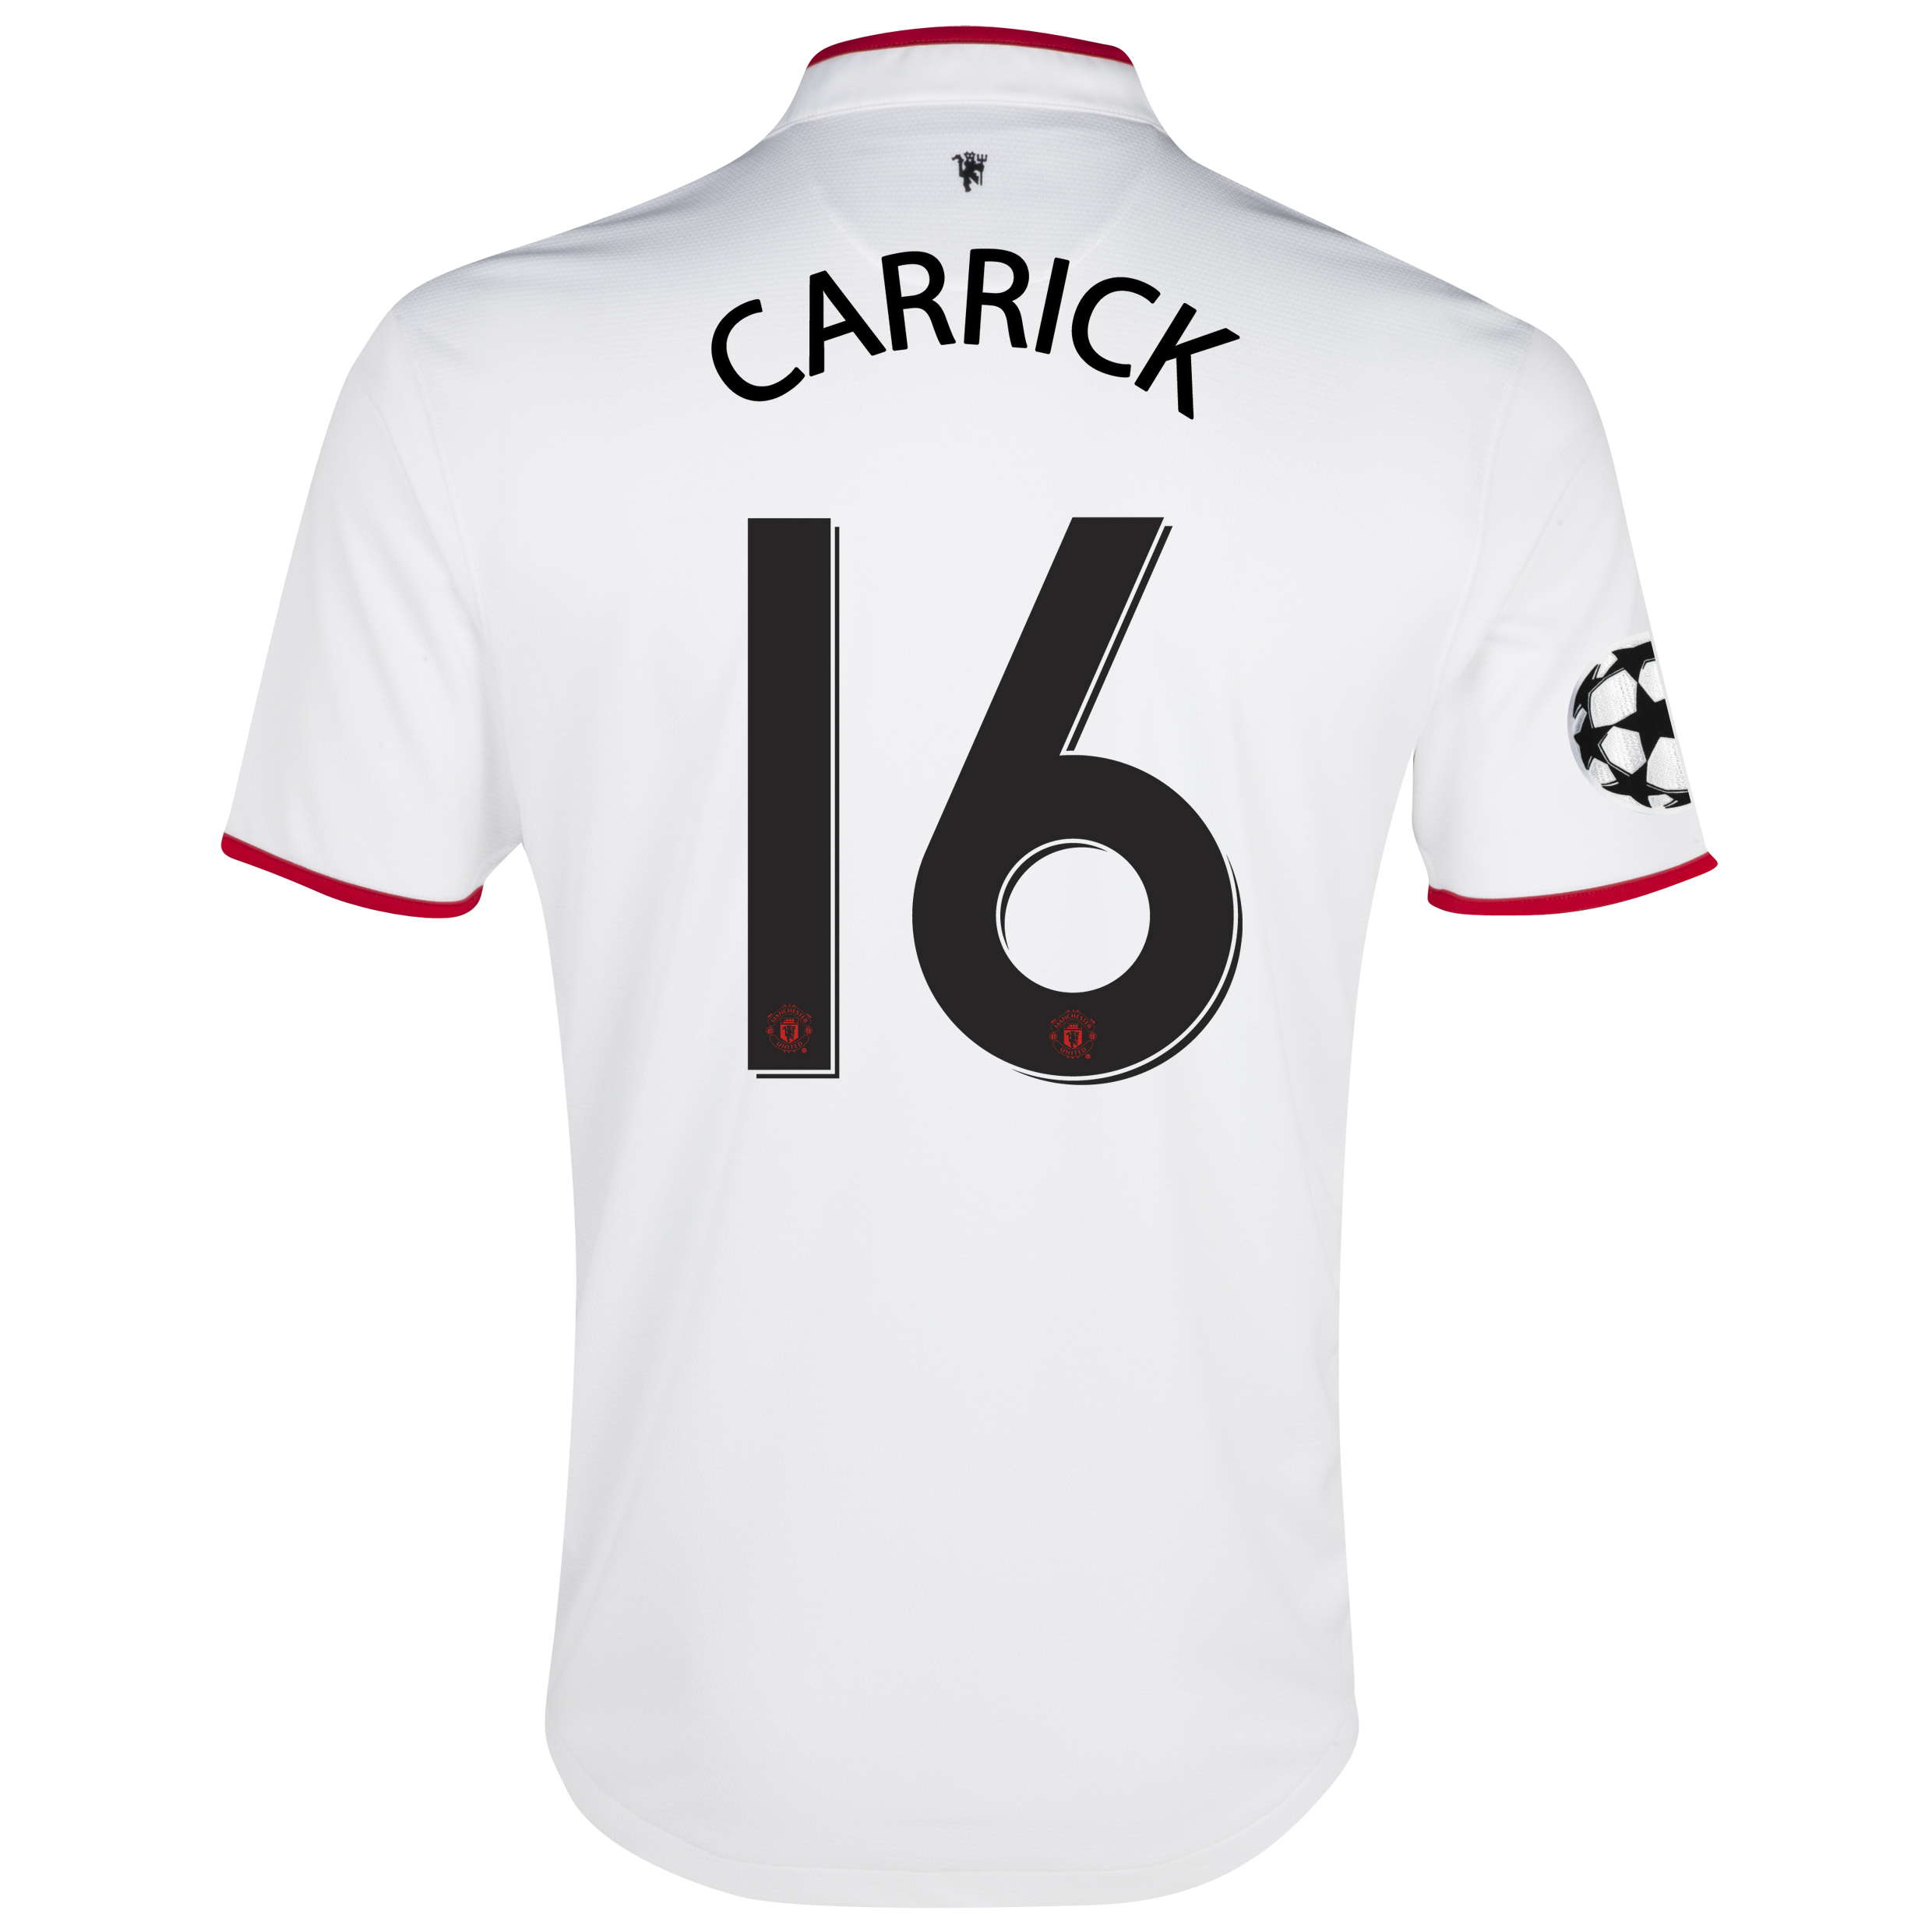 Manchester United UEFA Champions League Away Shirt 2012/13 with Carrick 16 printing